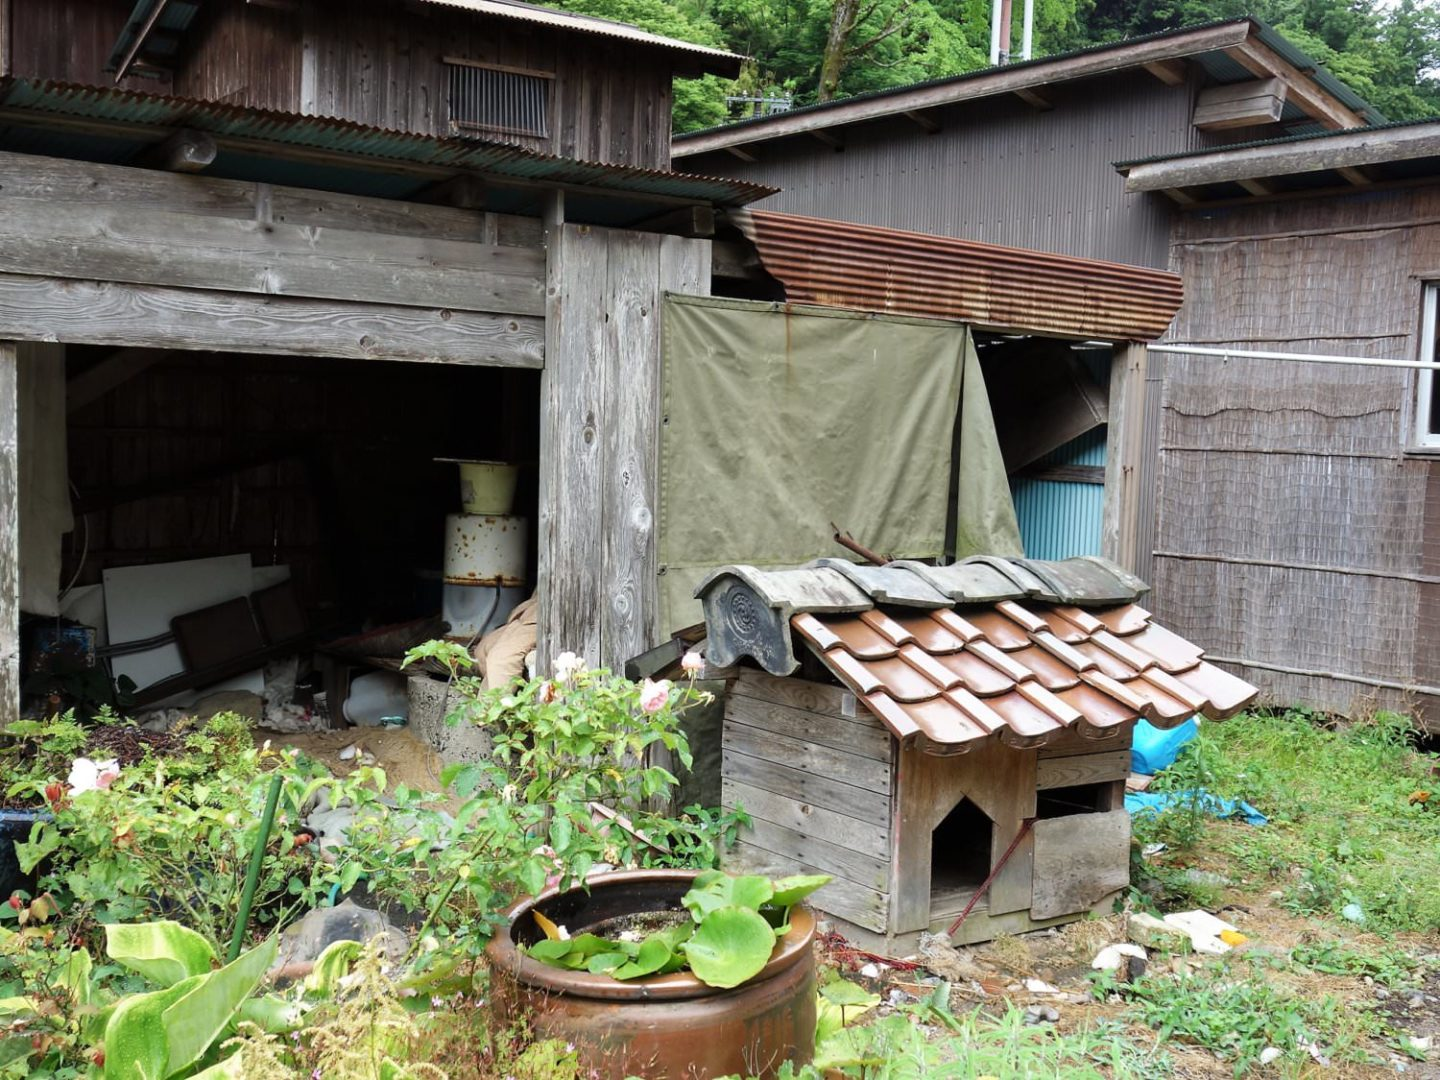 Dog house in Omori district